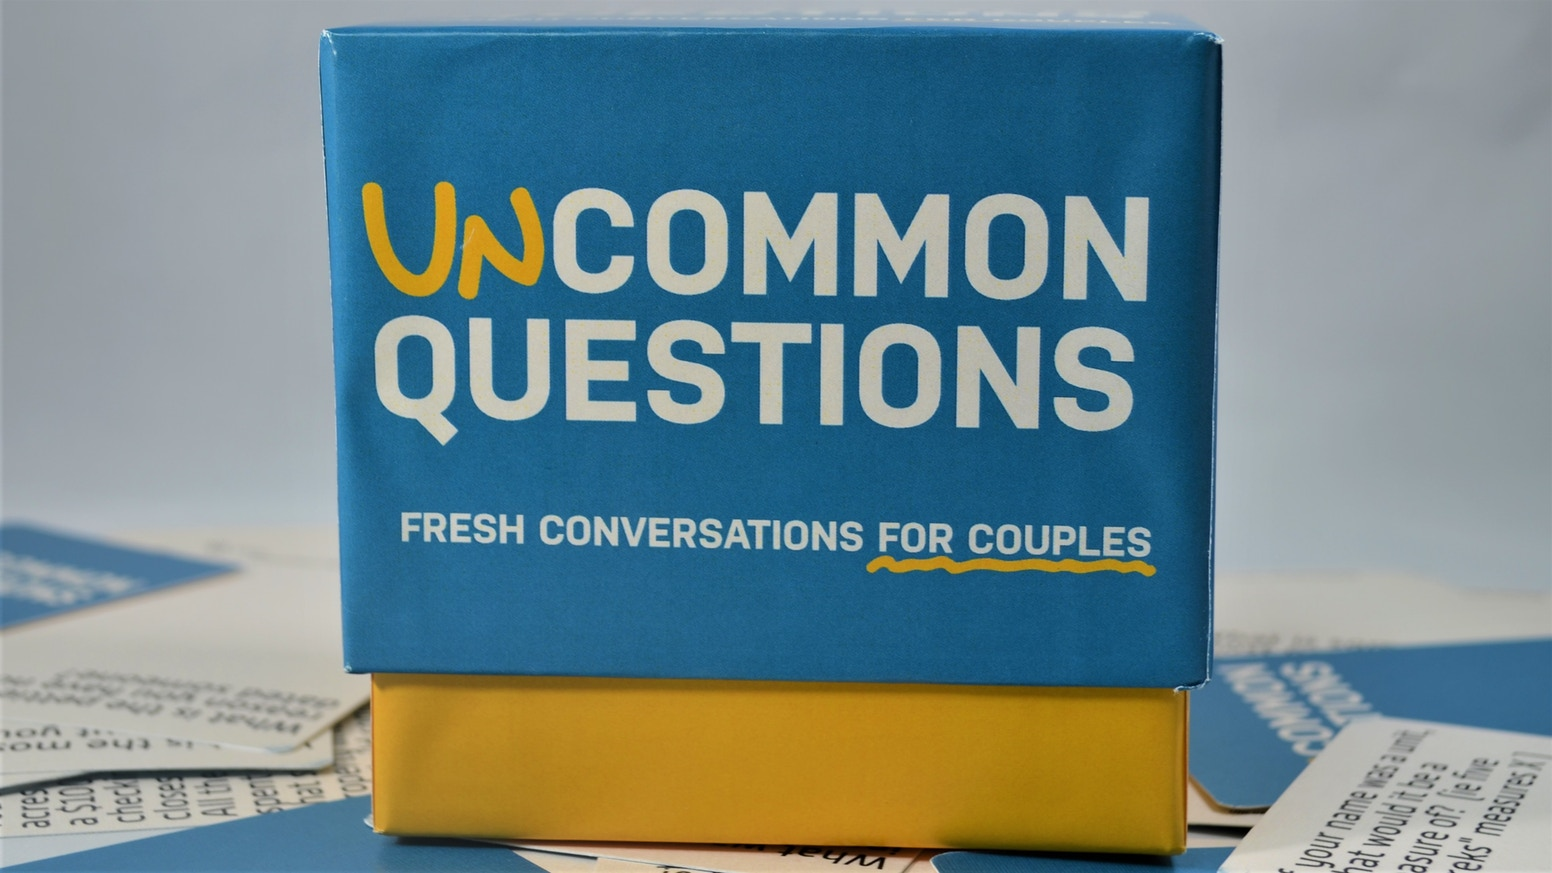 Hundreds of fun and insightful conversations you've never had. A quick way to reconnect and discover something new about your partner!